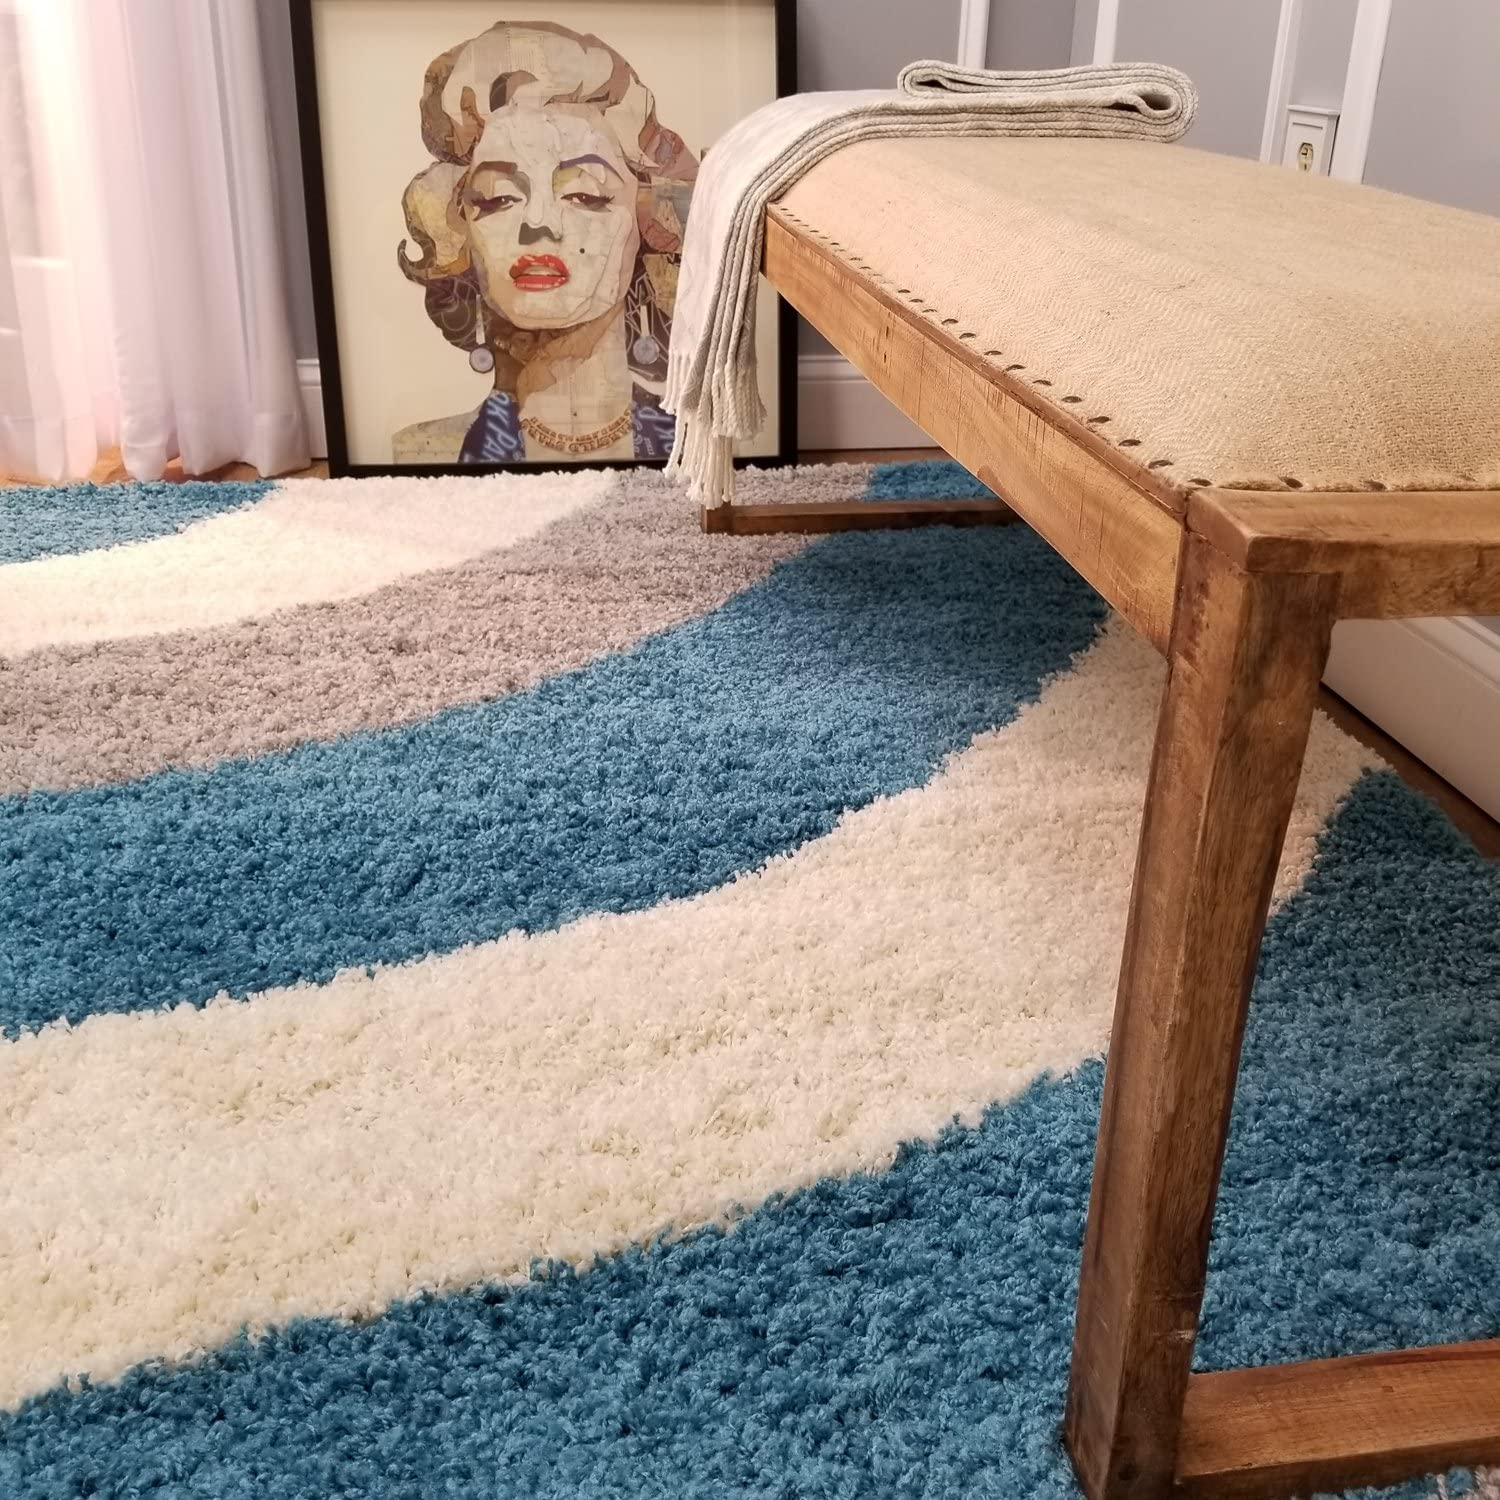 Shag Area Rug 3x5 | Wave Curve Turquoise Blue Gray Ivory Shag Rugs for Living Room Bedroom Nursery Kids College Dorm Carpet by European Made MH10 Maxy Home